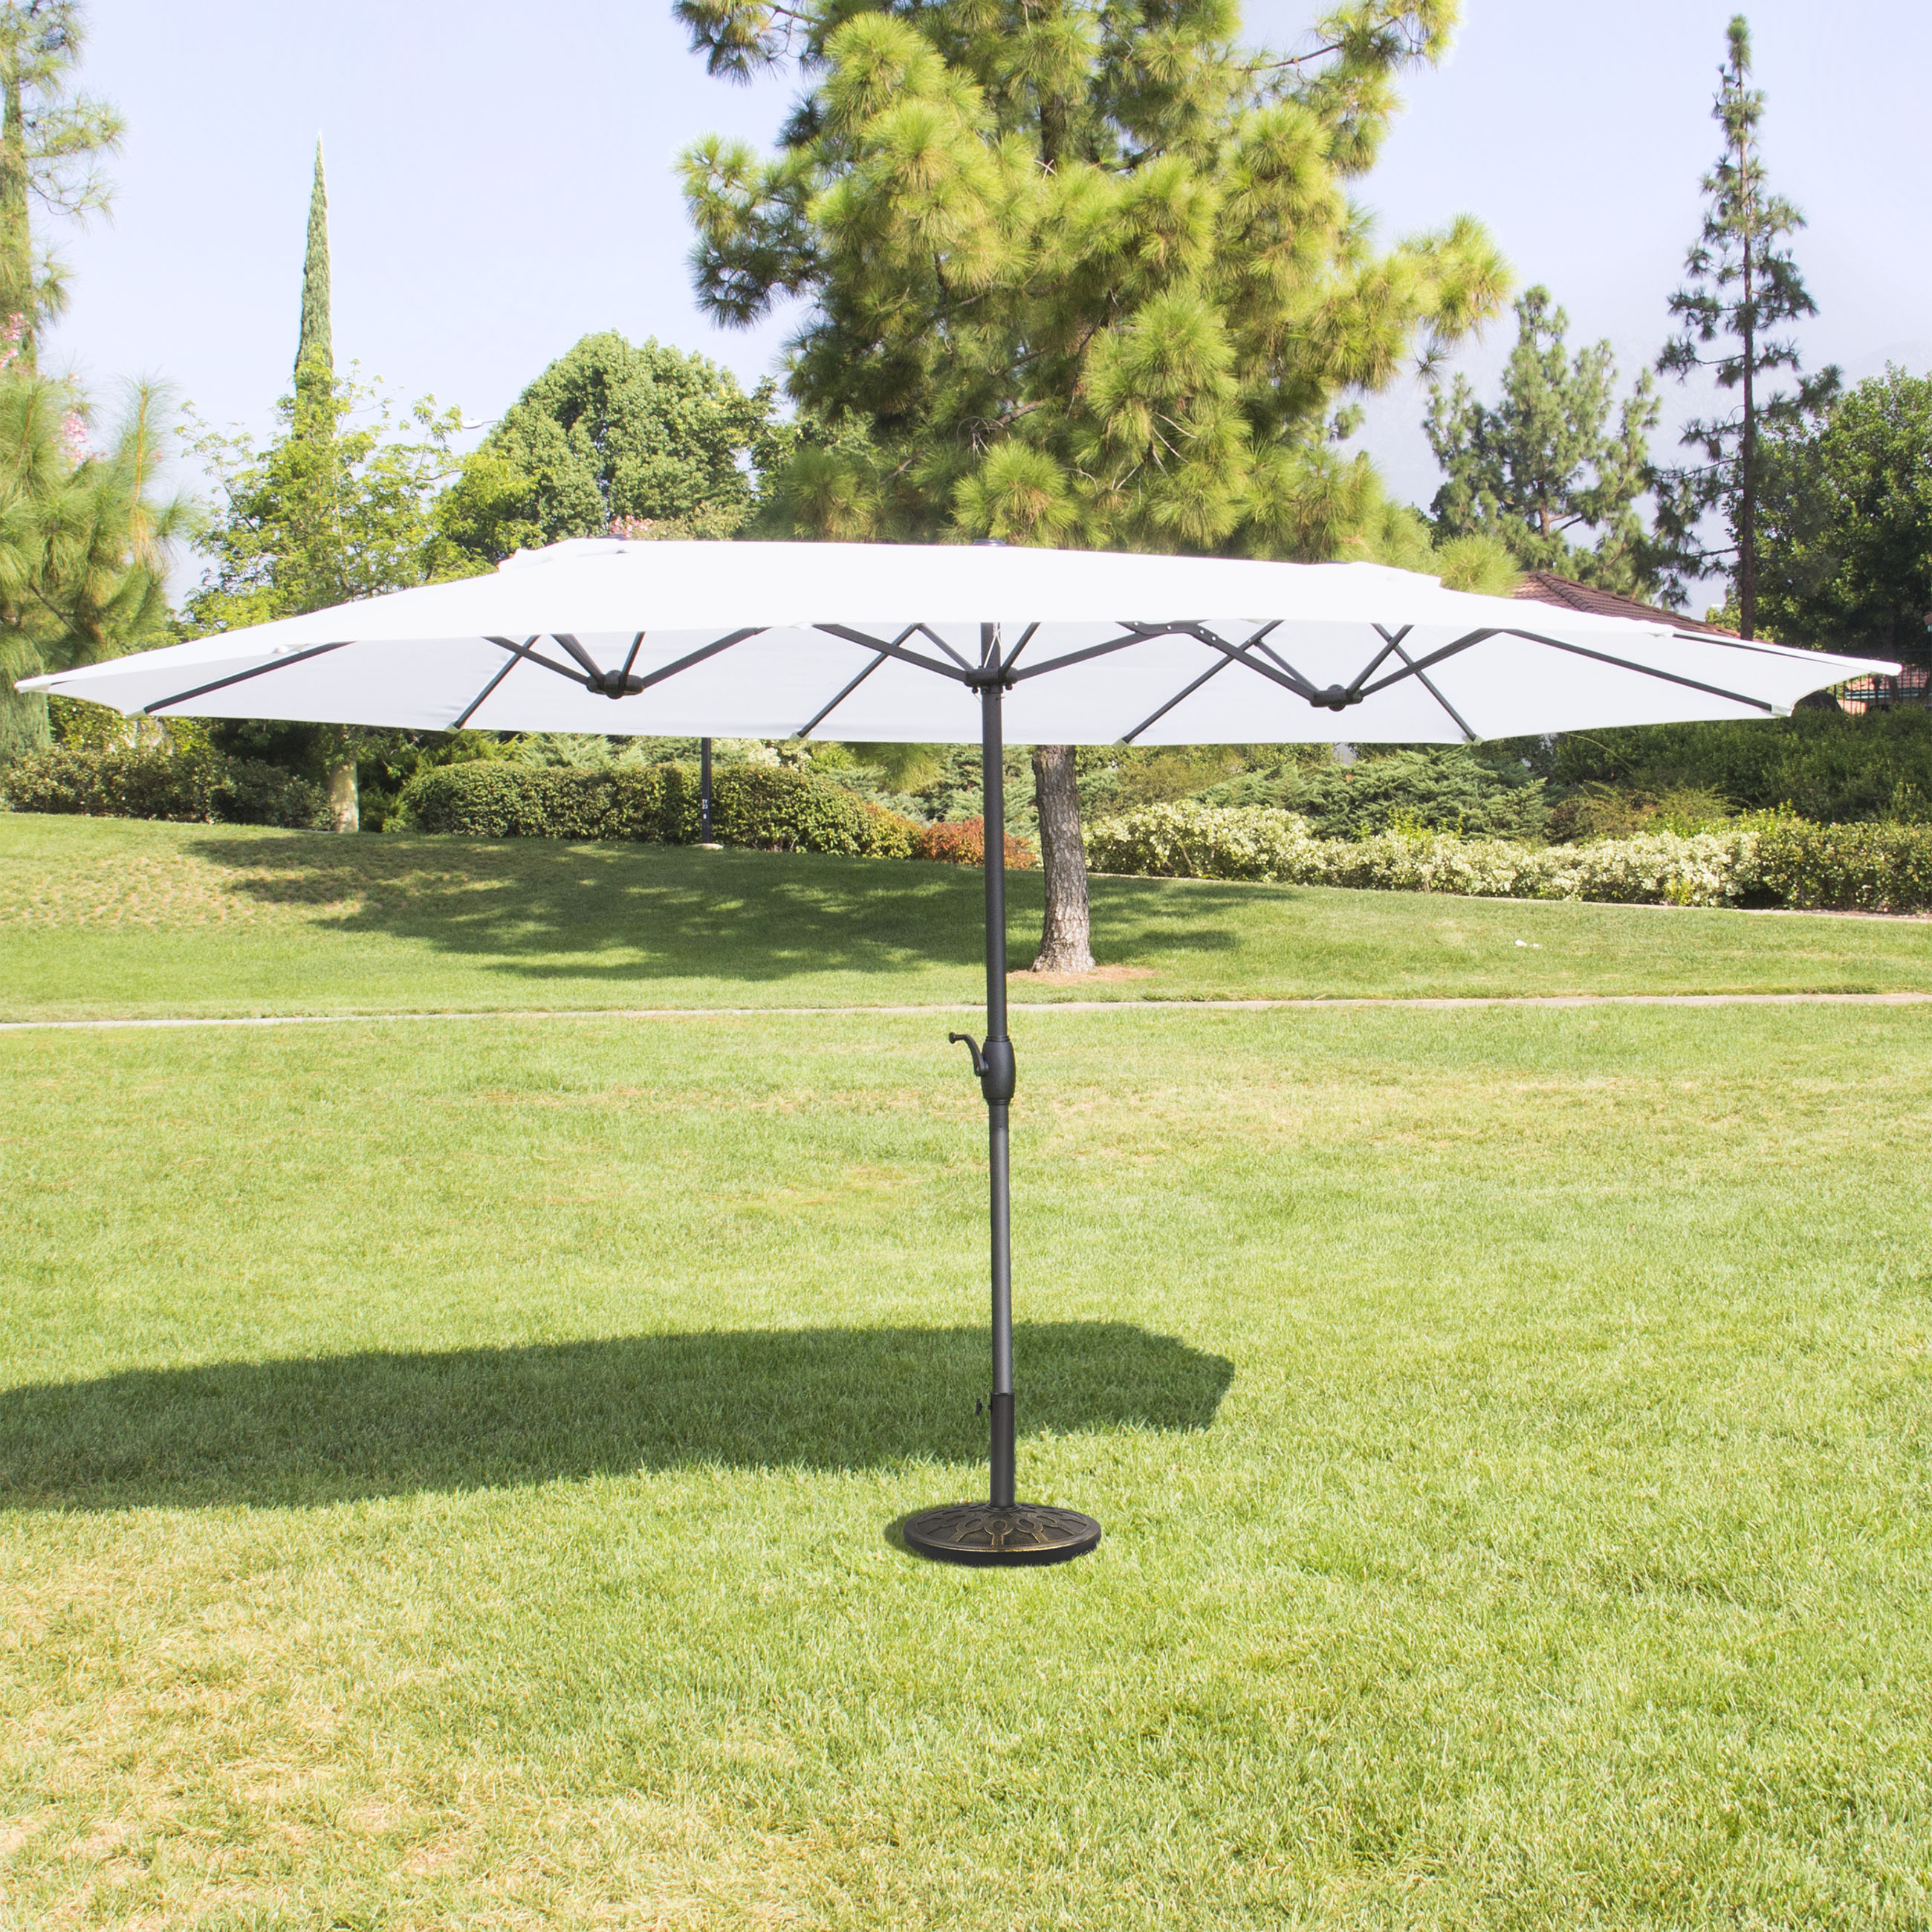 Best Choice Products 15' Outdoor Umbrella Double-Sided Aluminum Market Patio Umbrella with Crank by